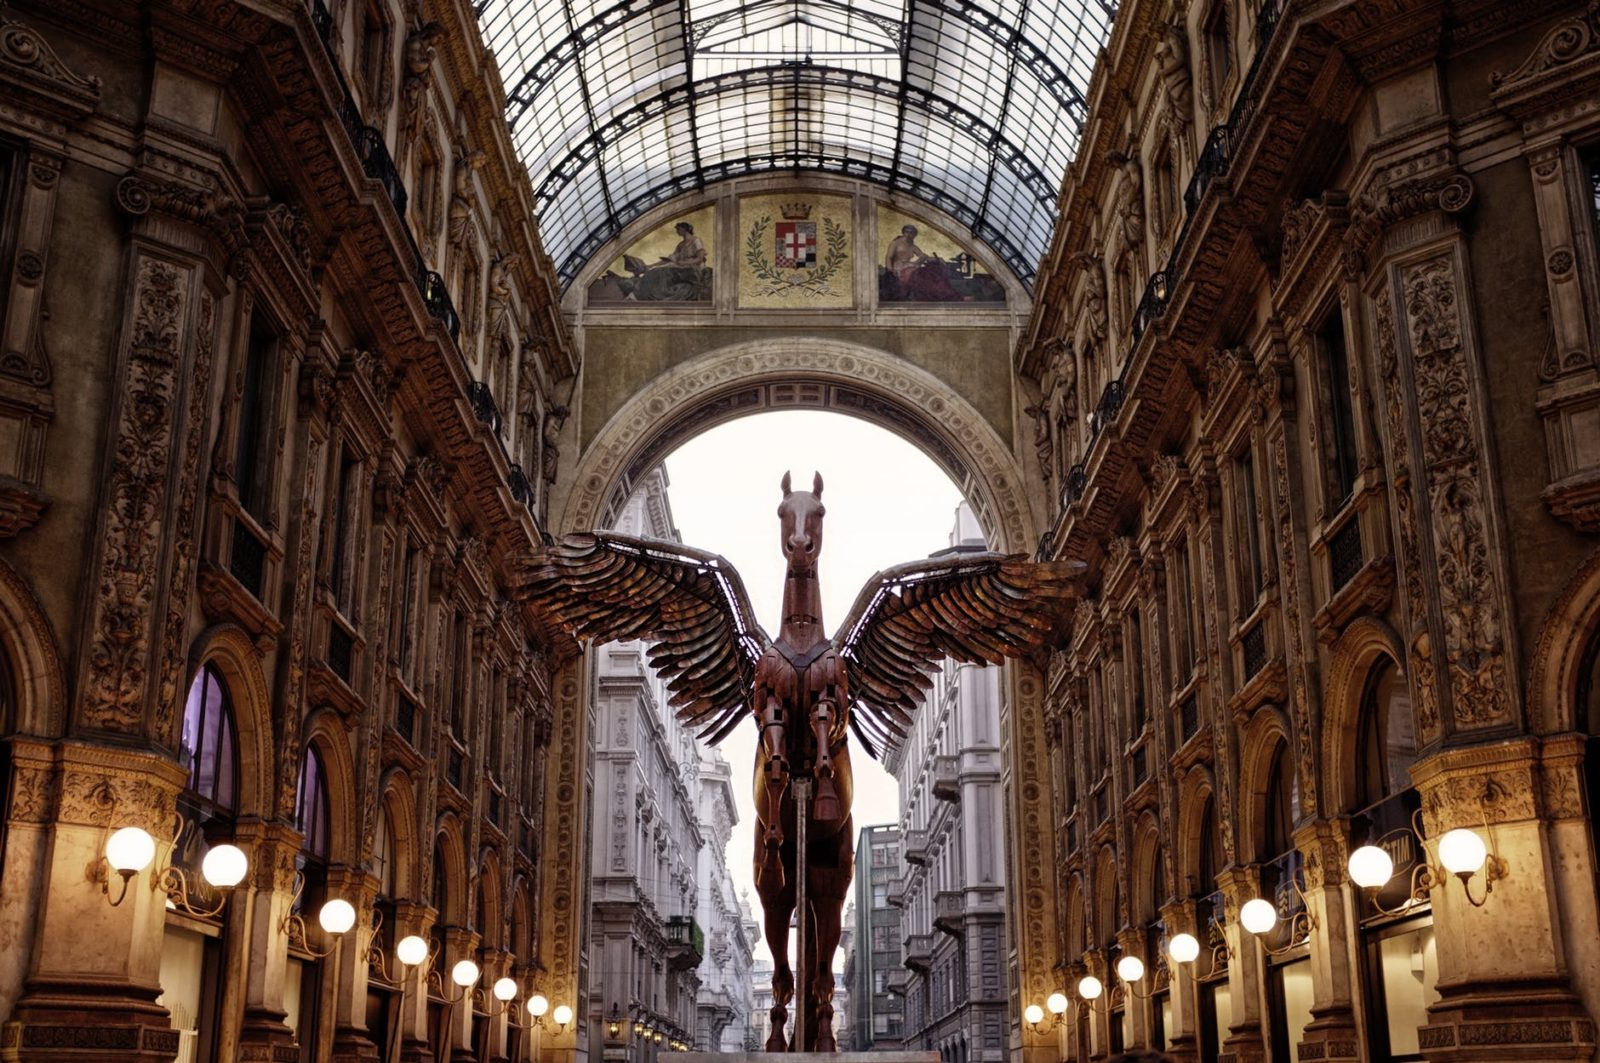 Flight Deal Round Trip From Chicago Area to Milan Italy #chicago #milanitaly #extendedweekend